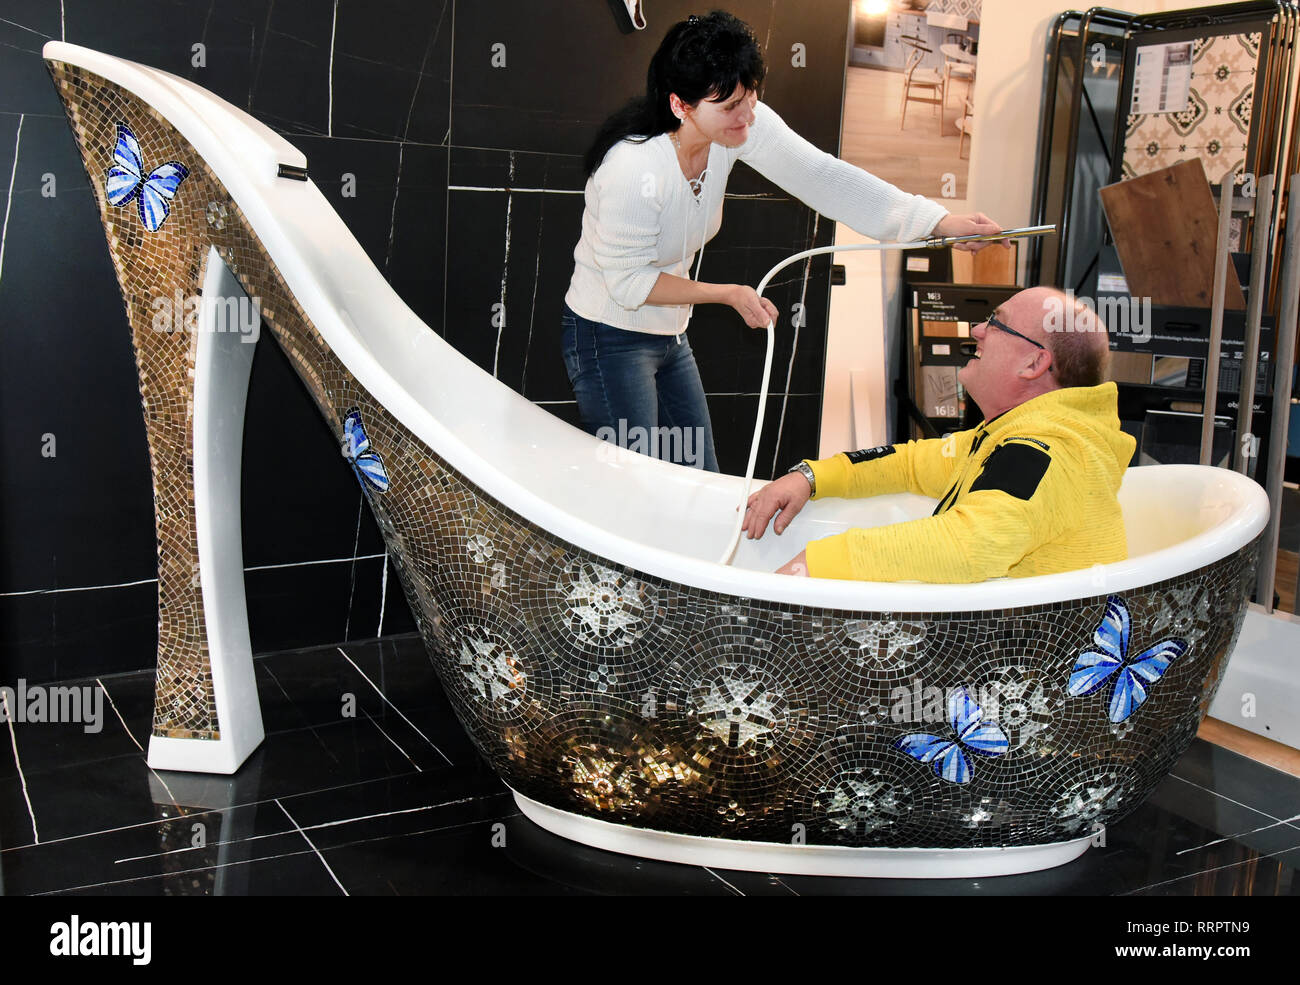 Leipzig Germany 25th Feb 2019 At The Central German Trade Fair 2019 At The Leipzig Trade Fair A Woman And A Man Will Try Out A Bathtub In Stiletto Design At A